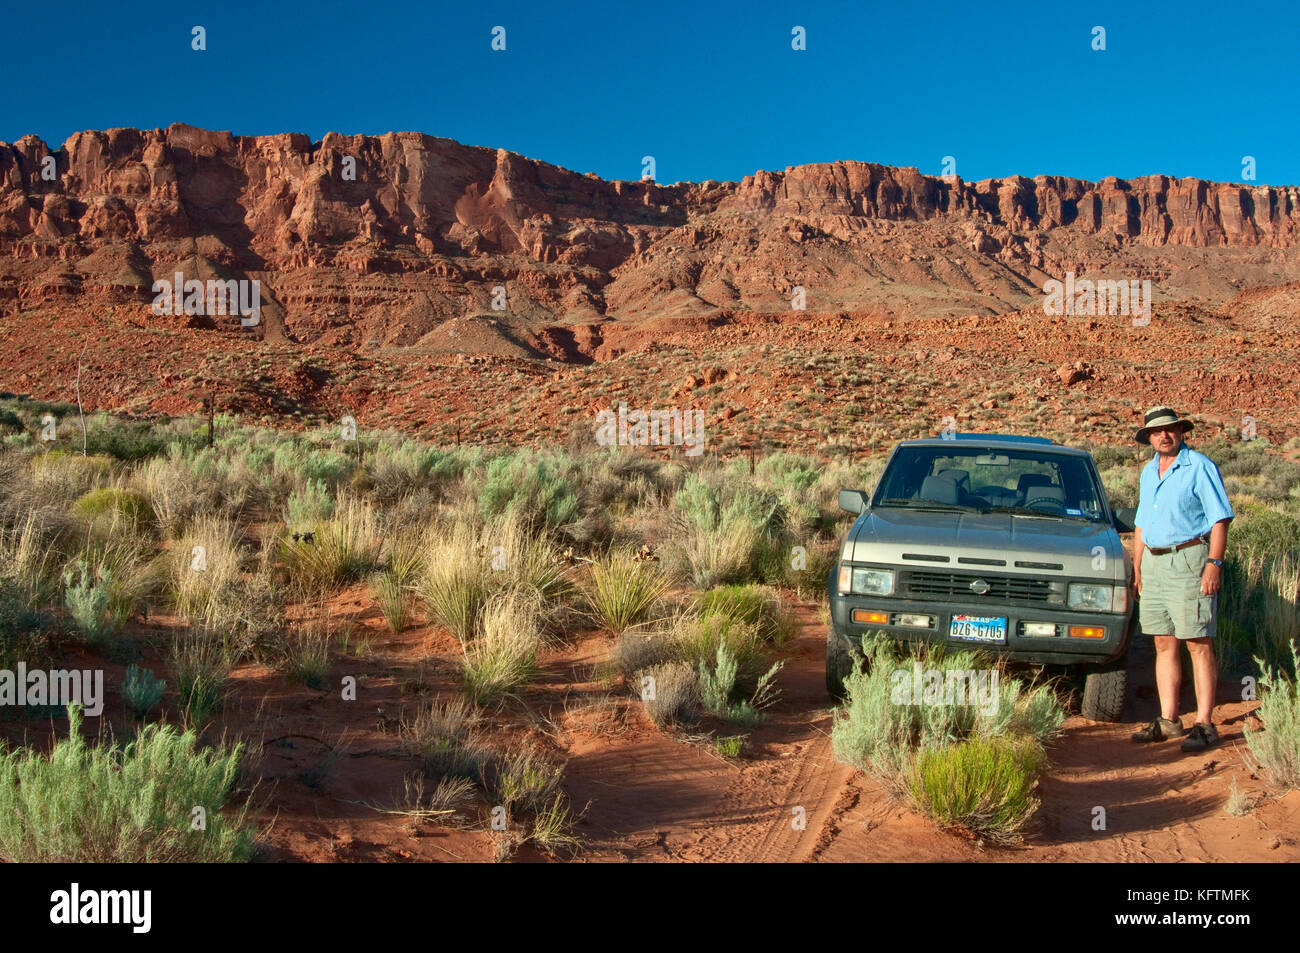 Middle age man, car on dirt track in Jacobs Pool water well area, Paria Plateau escarpment in dist, at Vermilion - Stock Image